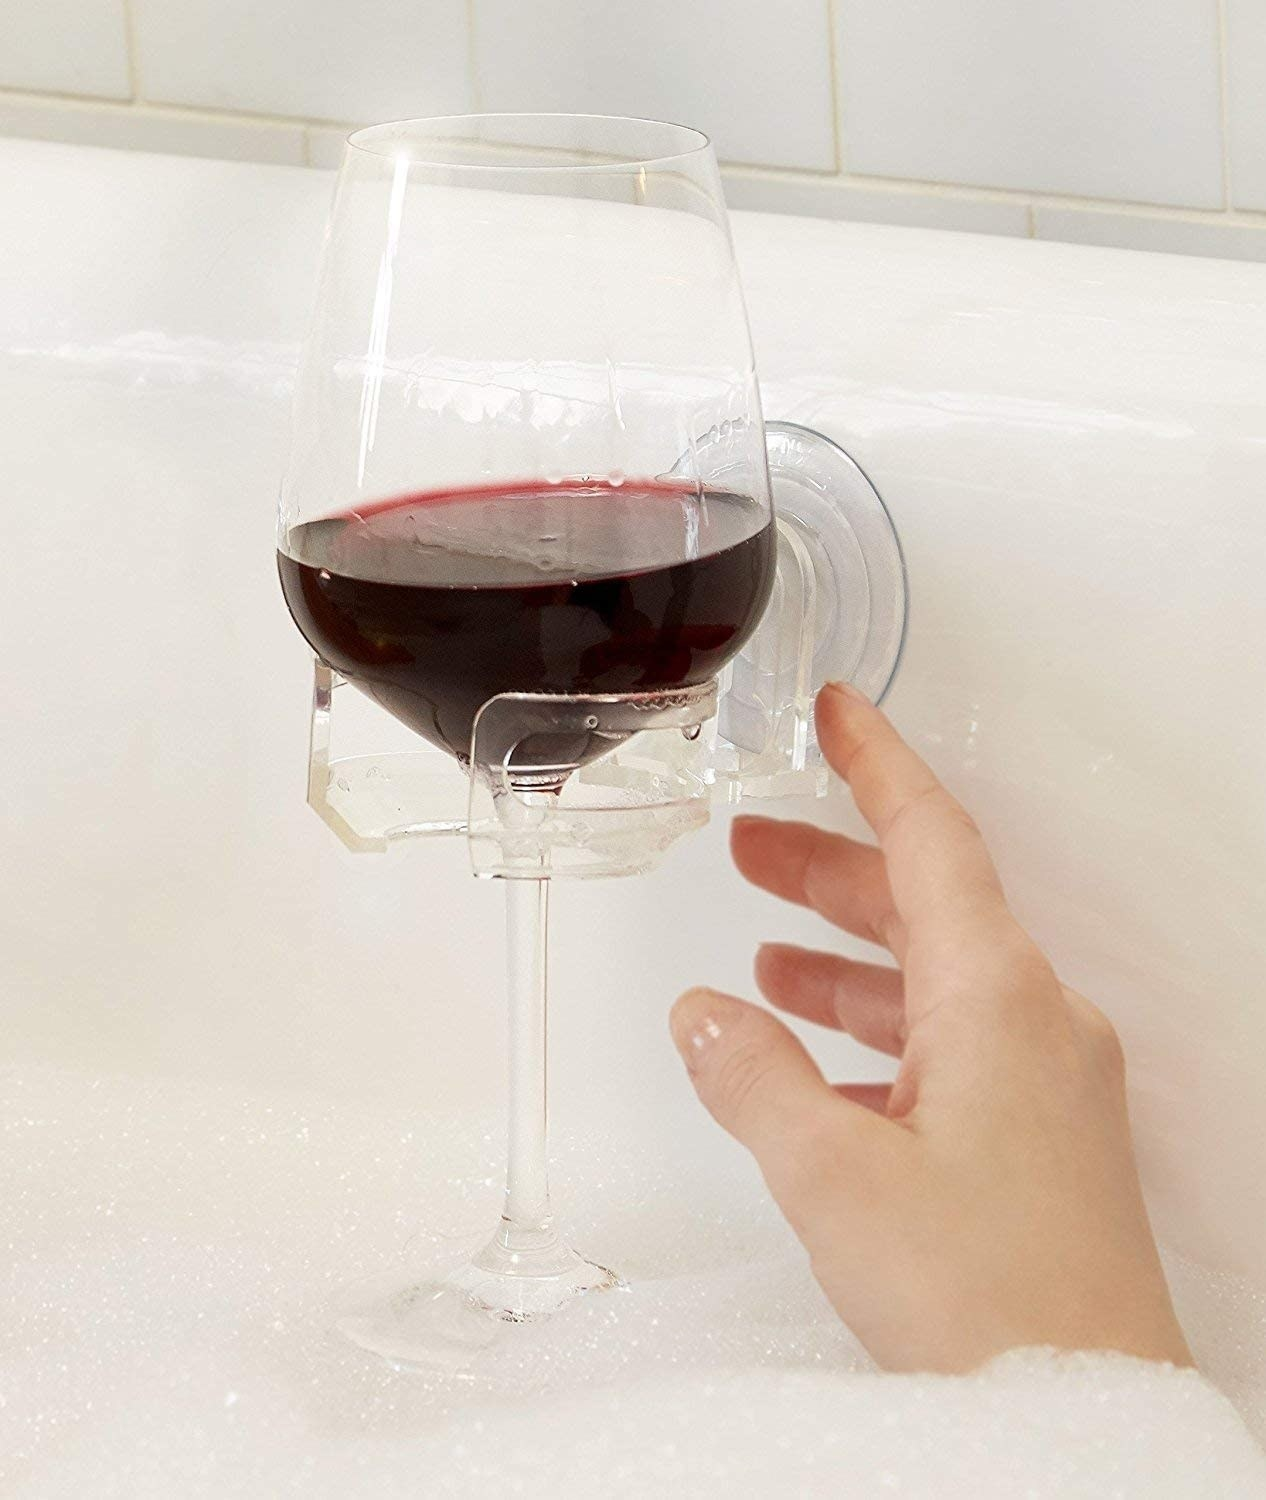 A suction cup holds a glass of wine on a bathtub as a hand reached for it